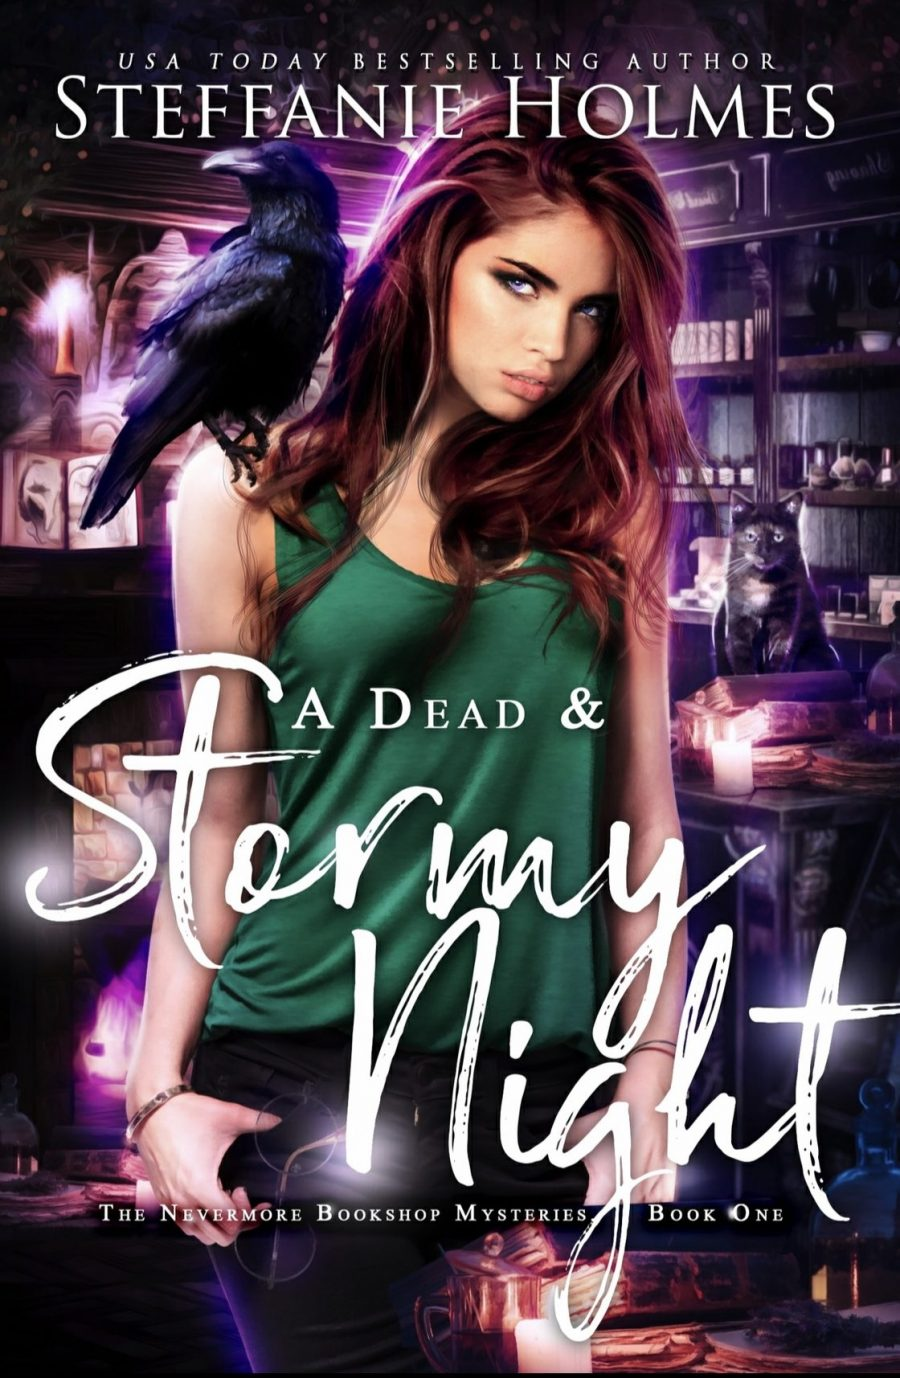 A Dead and Stormy Night by Steffanie Holmes – A Book Review